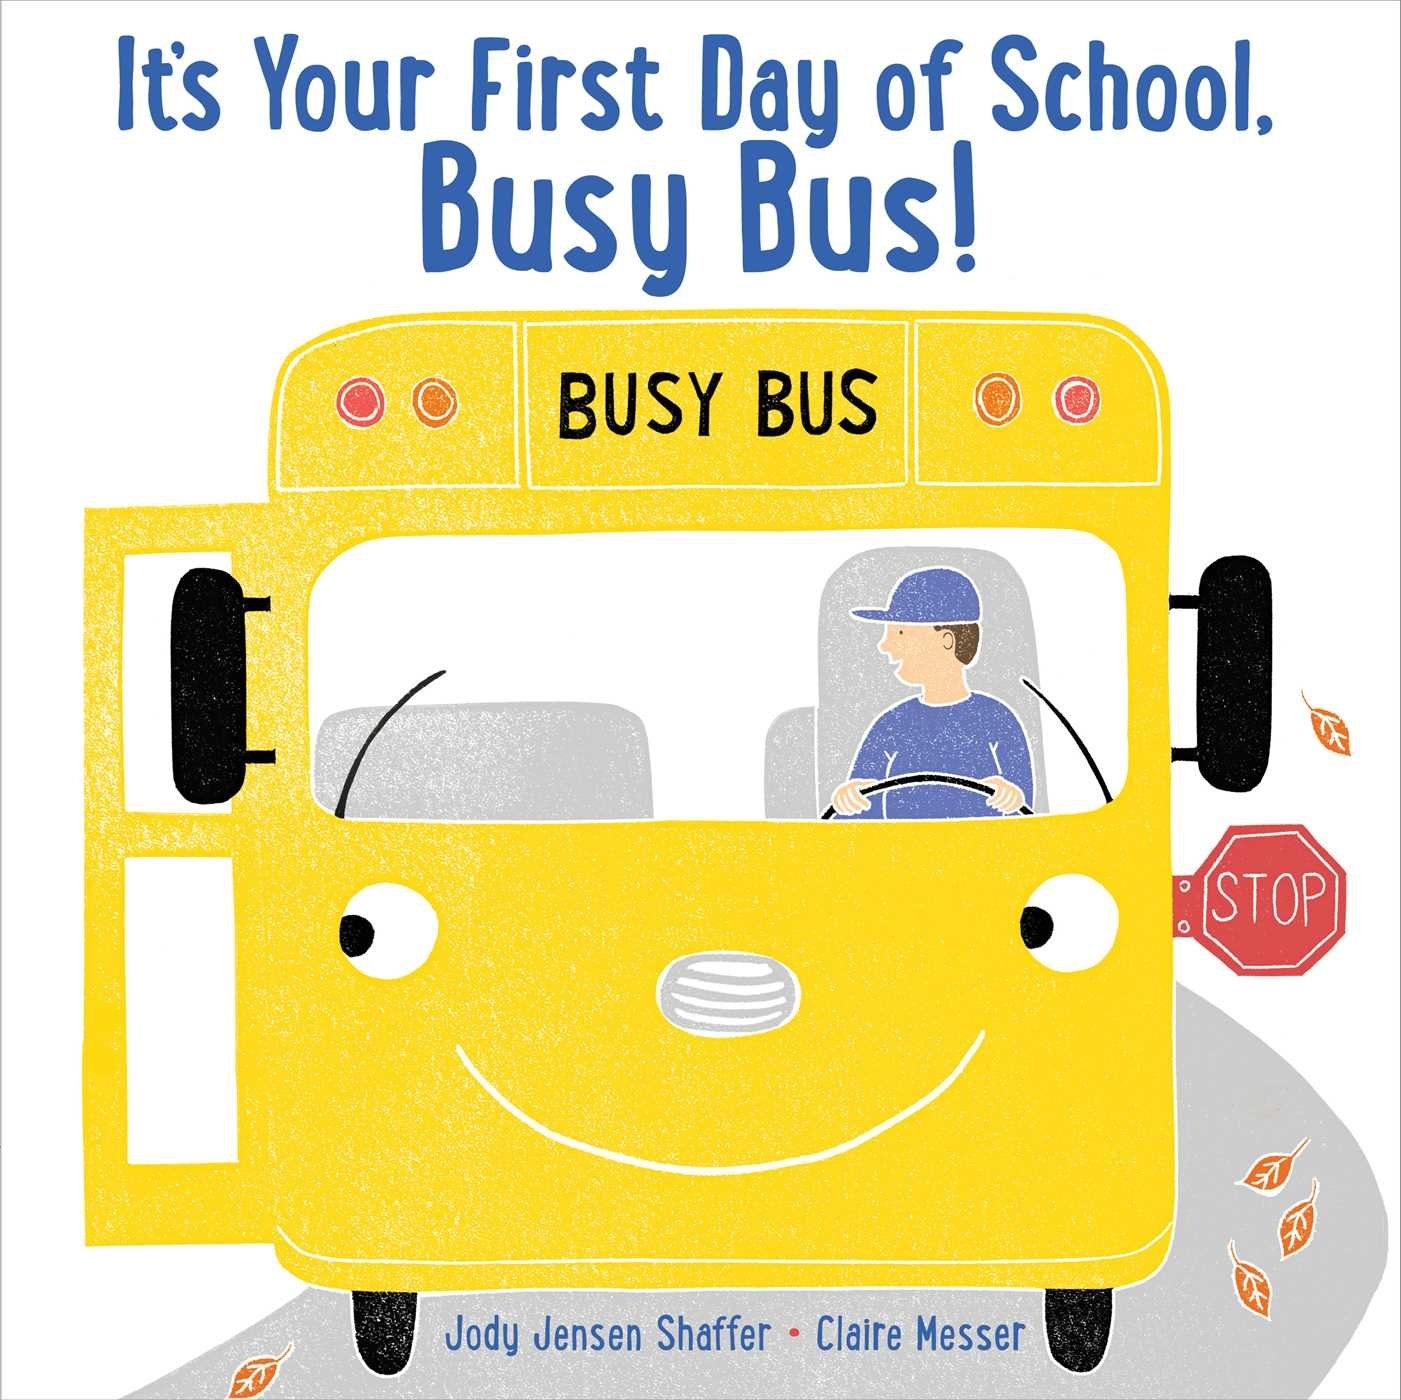 IT'S YOUR FIRST DAY OF SCHOOL, BUSY BUS cover from Amazon